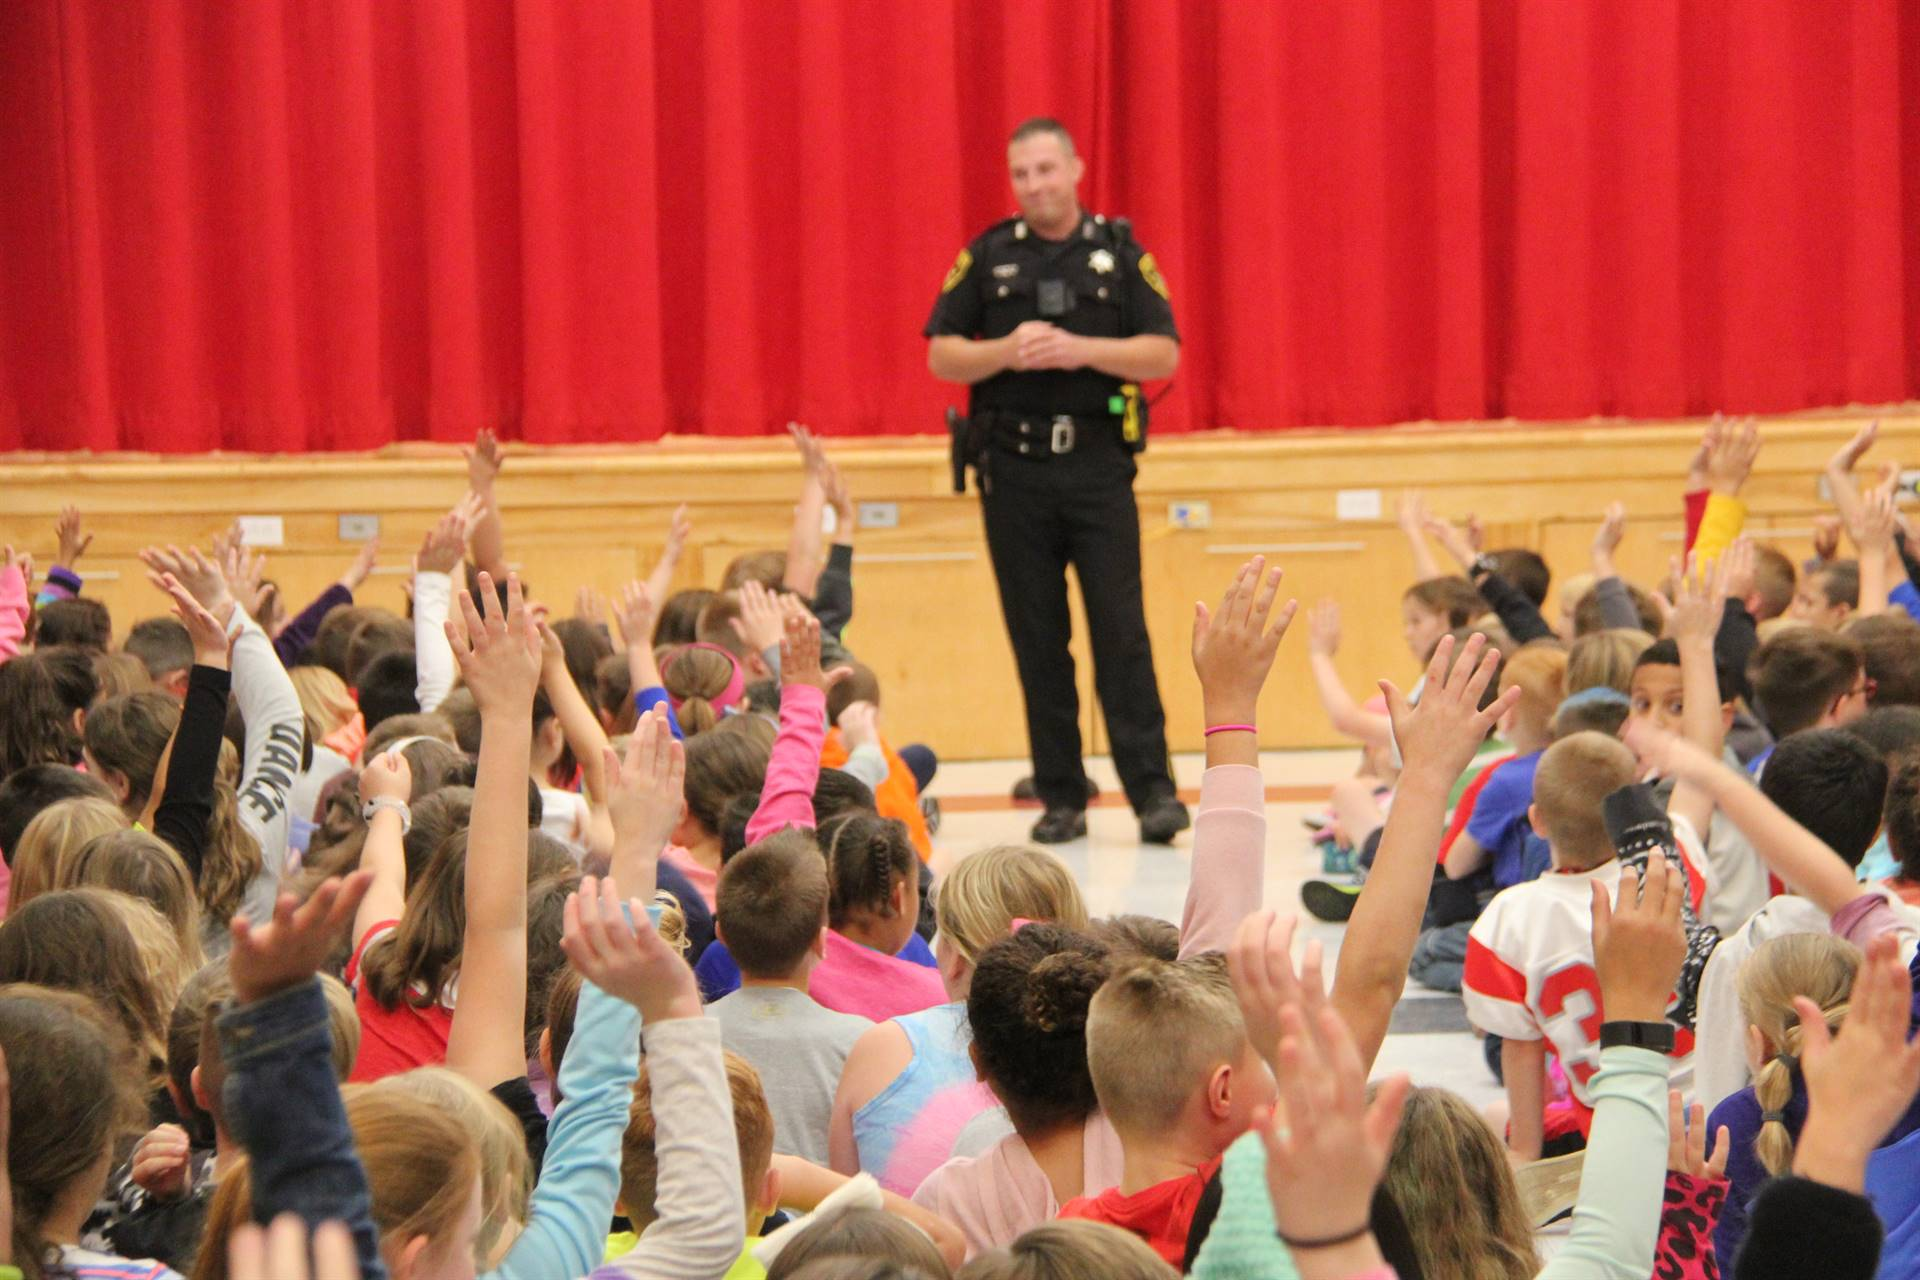 students raise their hands to answer deputy stapletons question